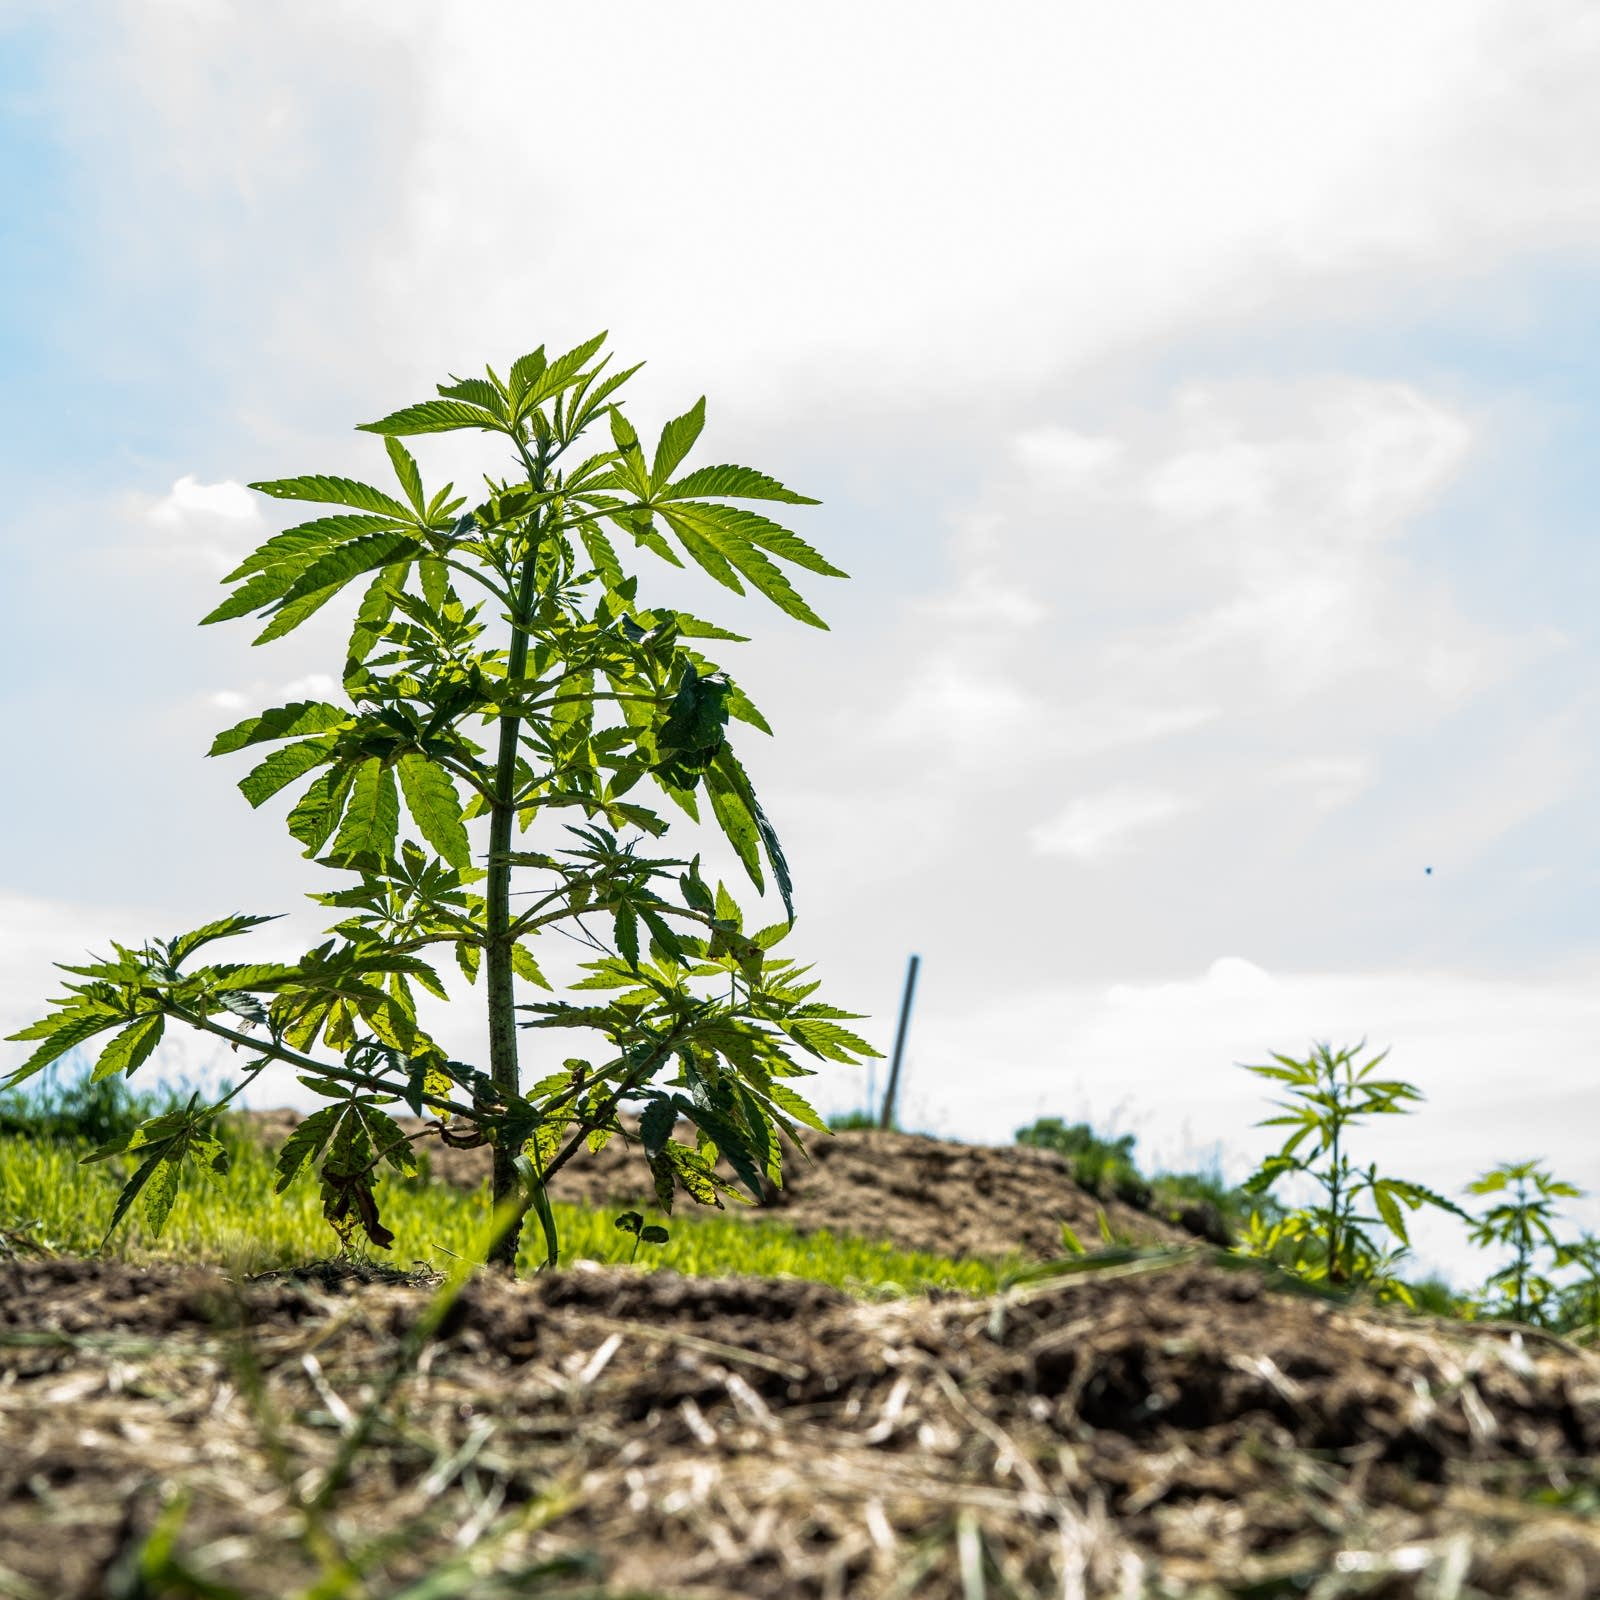 Hemp farmer sues MN over crop crackdown, says state broke its own